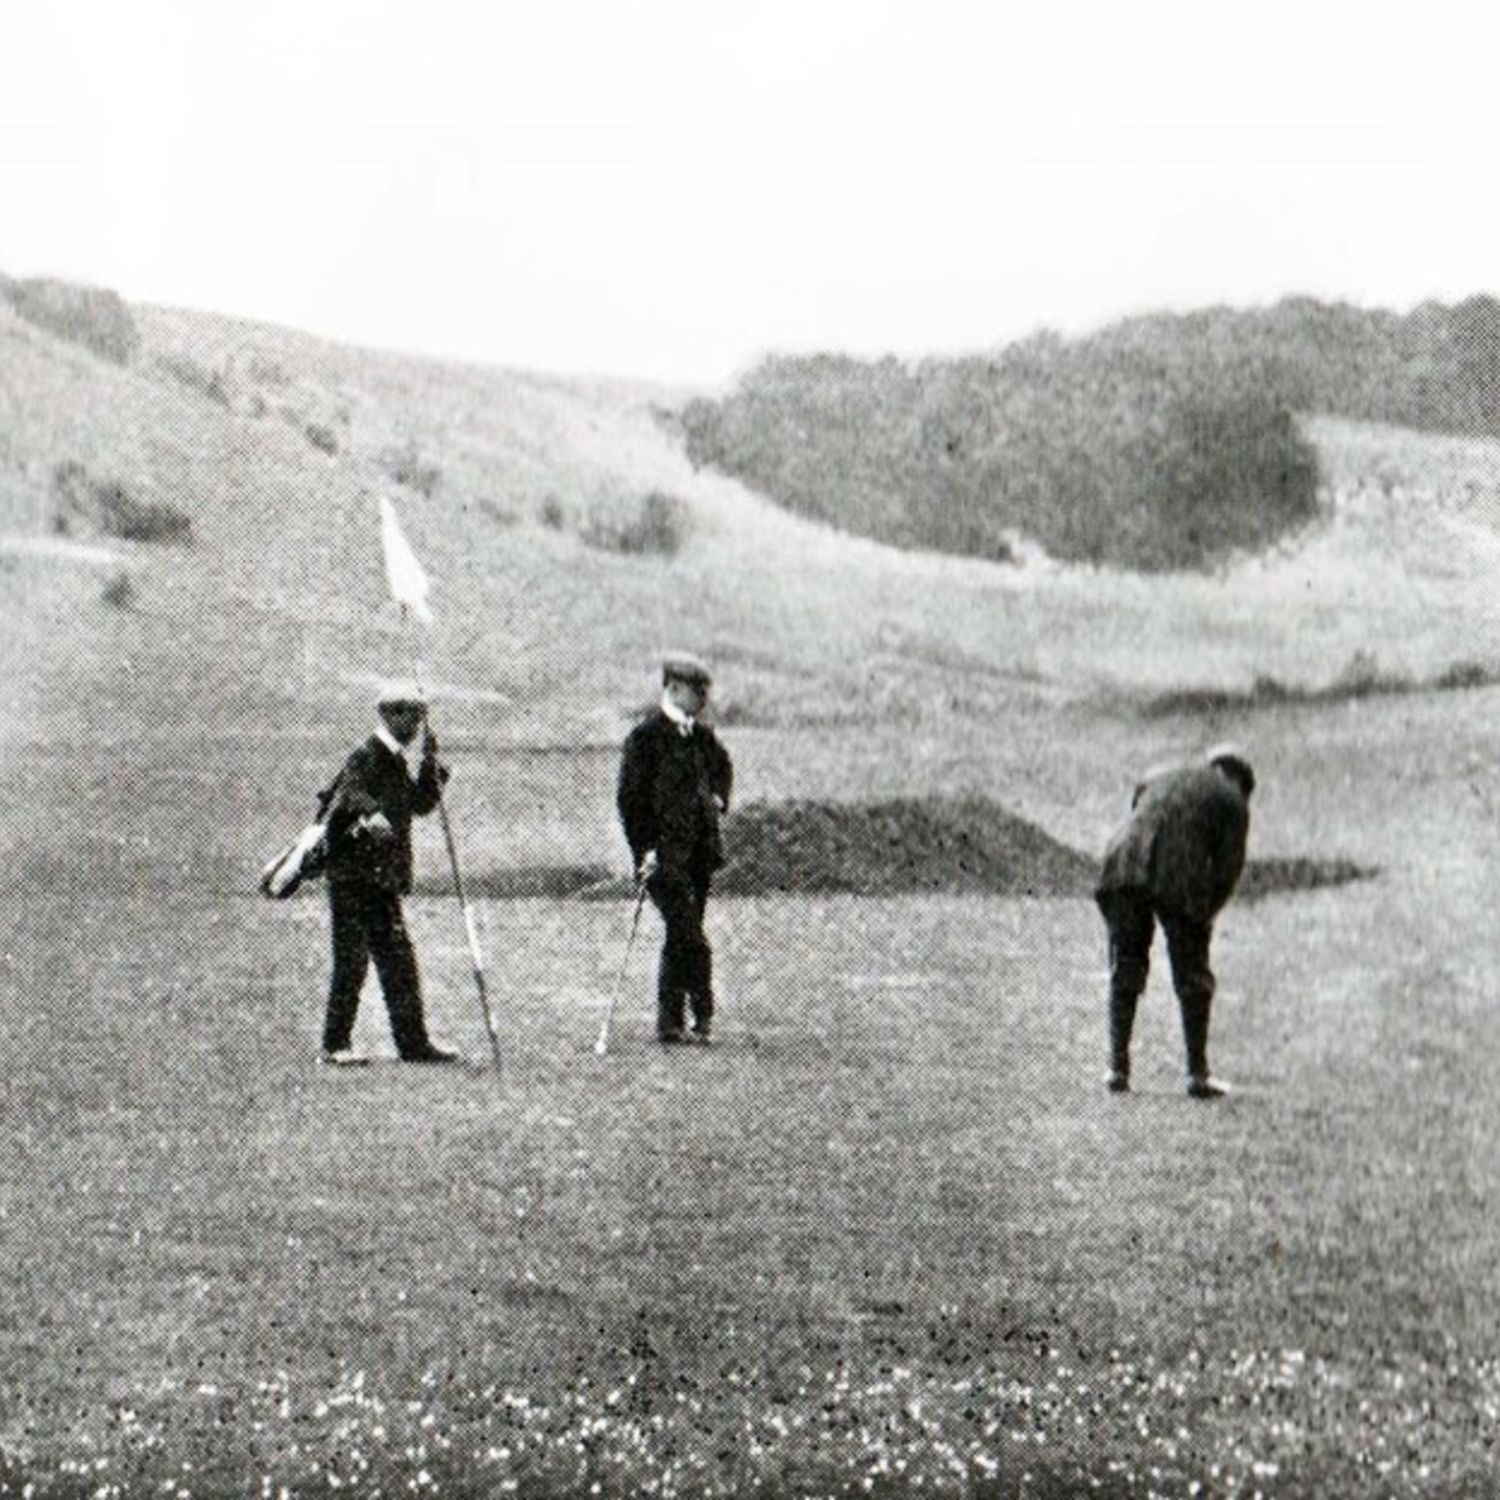 1914 The 7th green of the old course. The valley in the background is the present 8th hole.